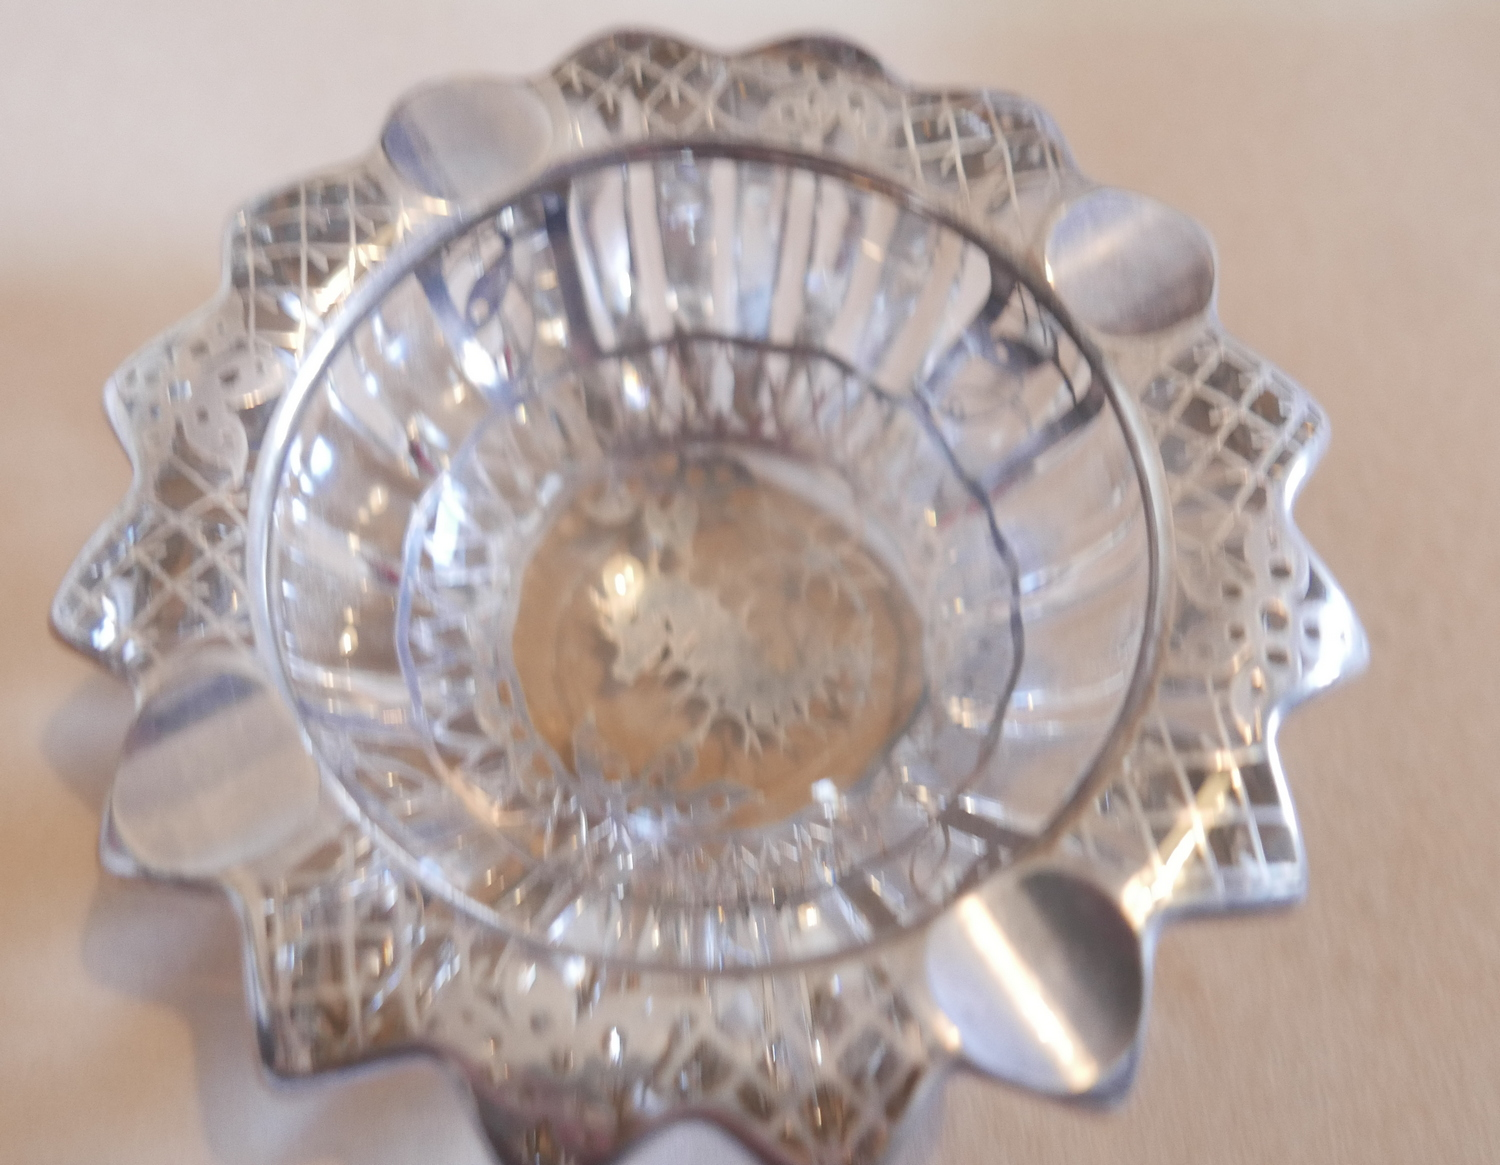 Lot 446 - Vintage Pierre D'Avesn Silver Overlaid Seahorse Glass Bowl - 135mm diameter and 50mm tall.